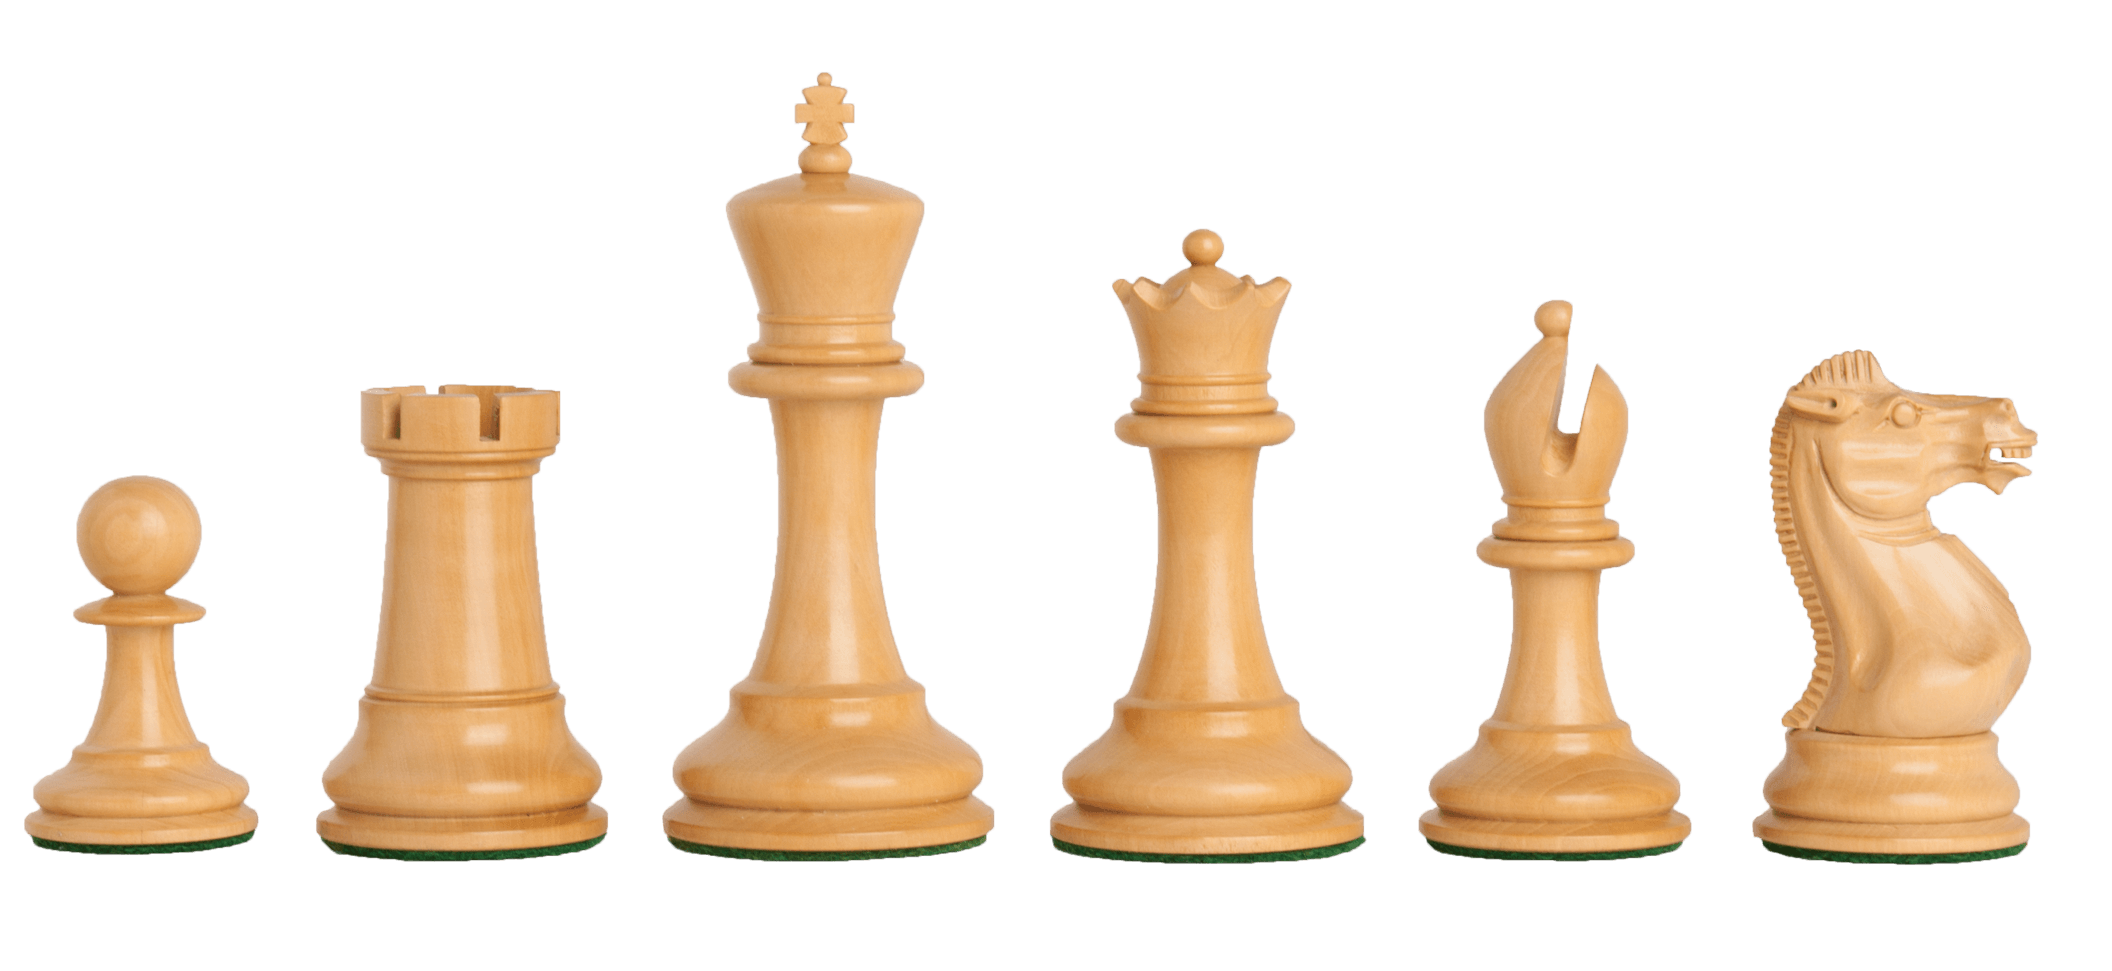 7ee9b47d97733 CLEARANCE - The Morphy Series Luxury Chess Set - 4.0